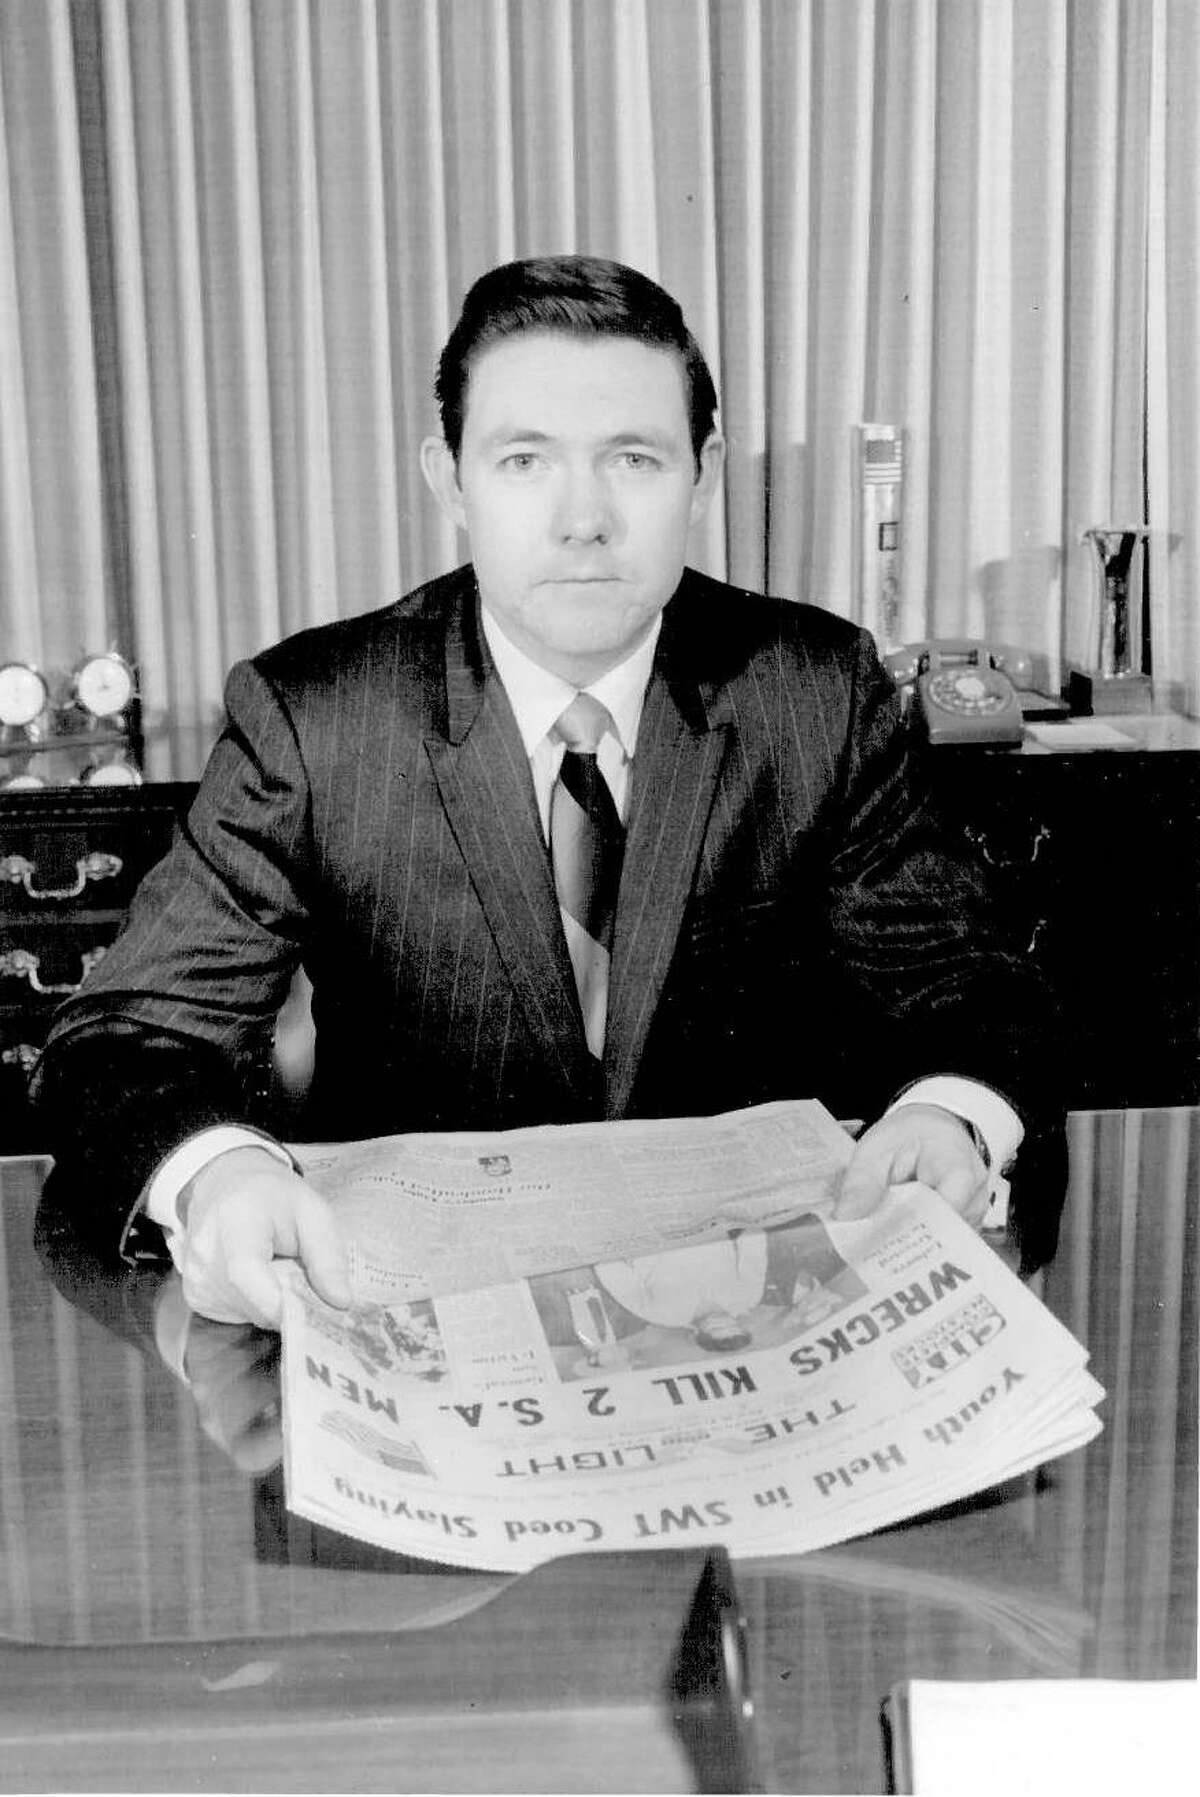 Frank A. Bennack Jr. photographed in 1970 at the San Antonio Light. After serving as publisher of the daily newspaper, Bennack moved to Hearst Corp. in New York and soon became its CEO.